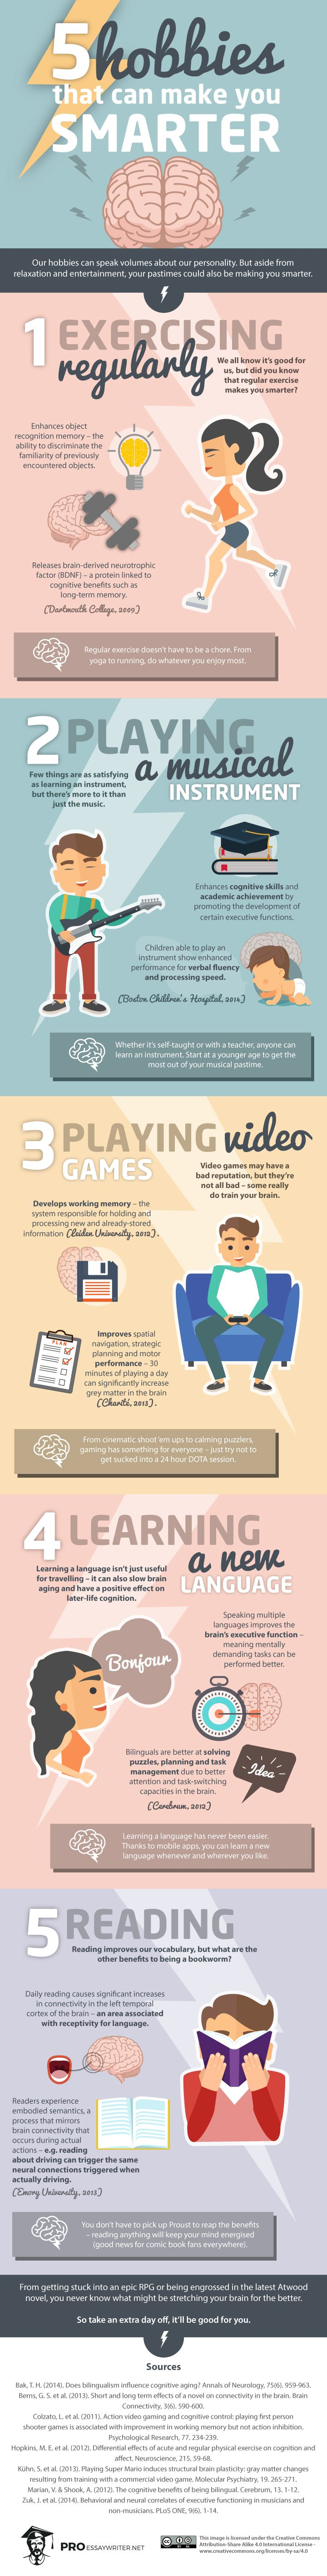 What Are 5 Fun Hobbies That Can Make You Smarter? #infographic